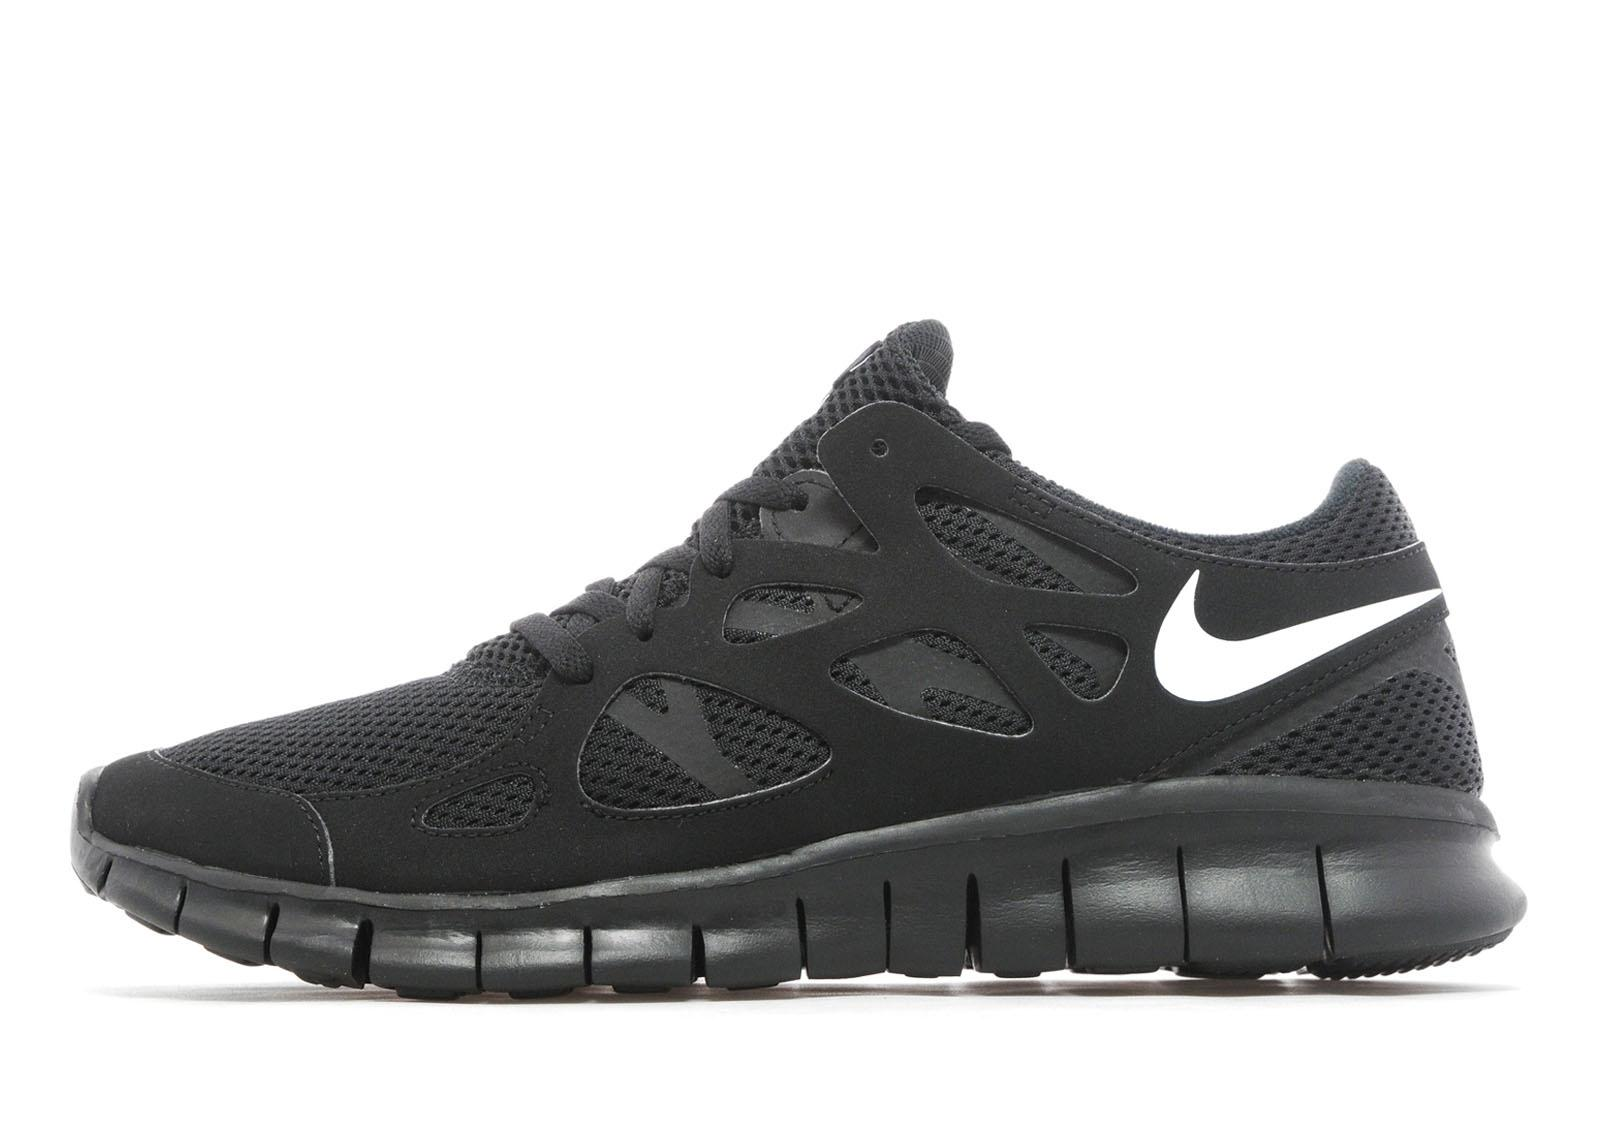 nike free runs 2 jd sports fashion